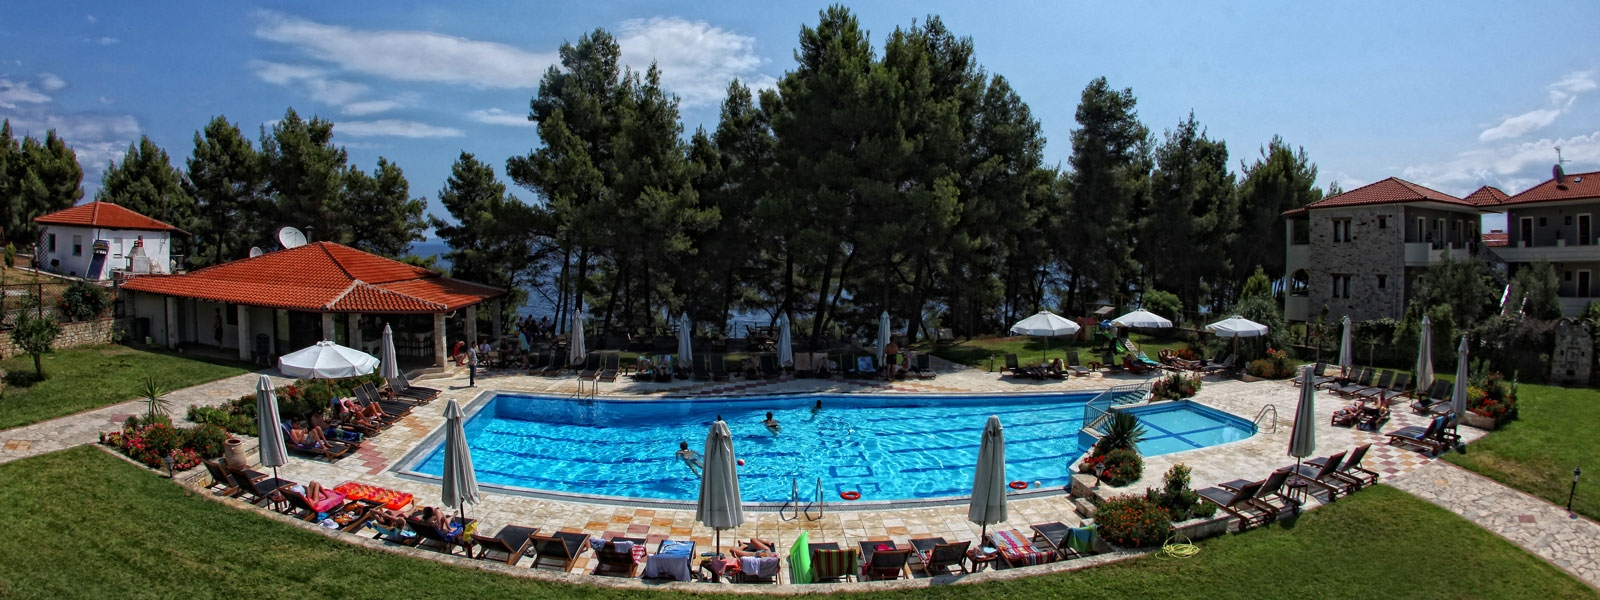 Nostos Hotel, Chalkidiki, Afitos, hotels, rooms, studios, accommodation, prices, offers, Greece